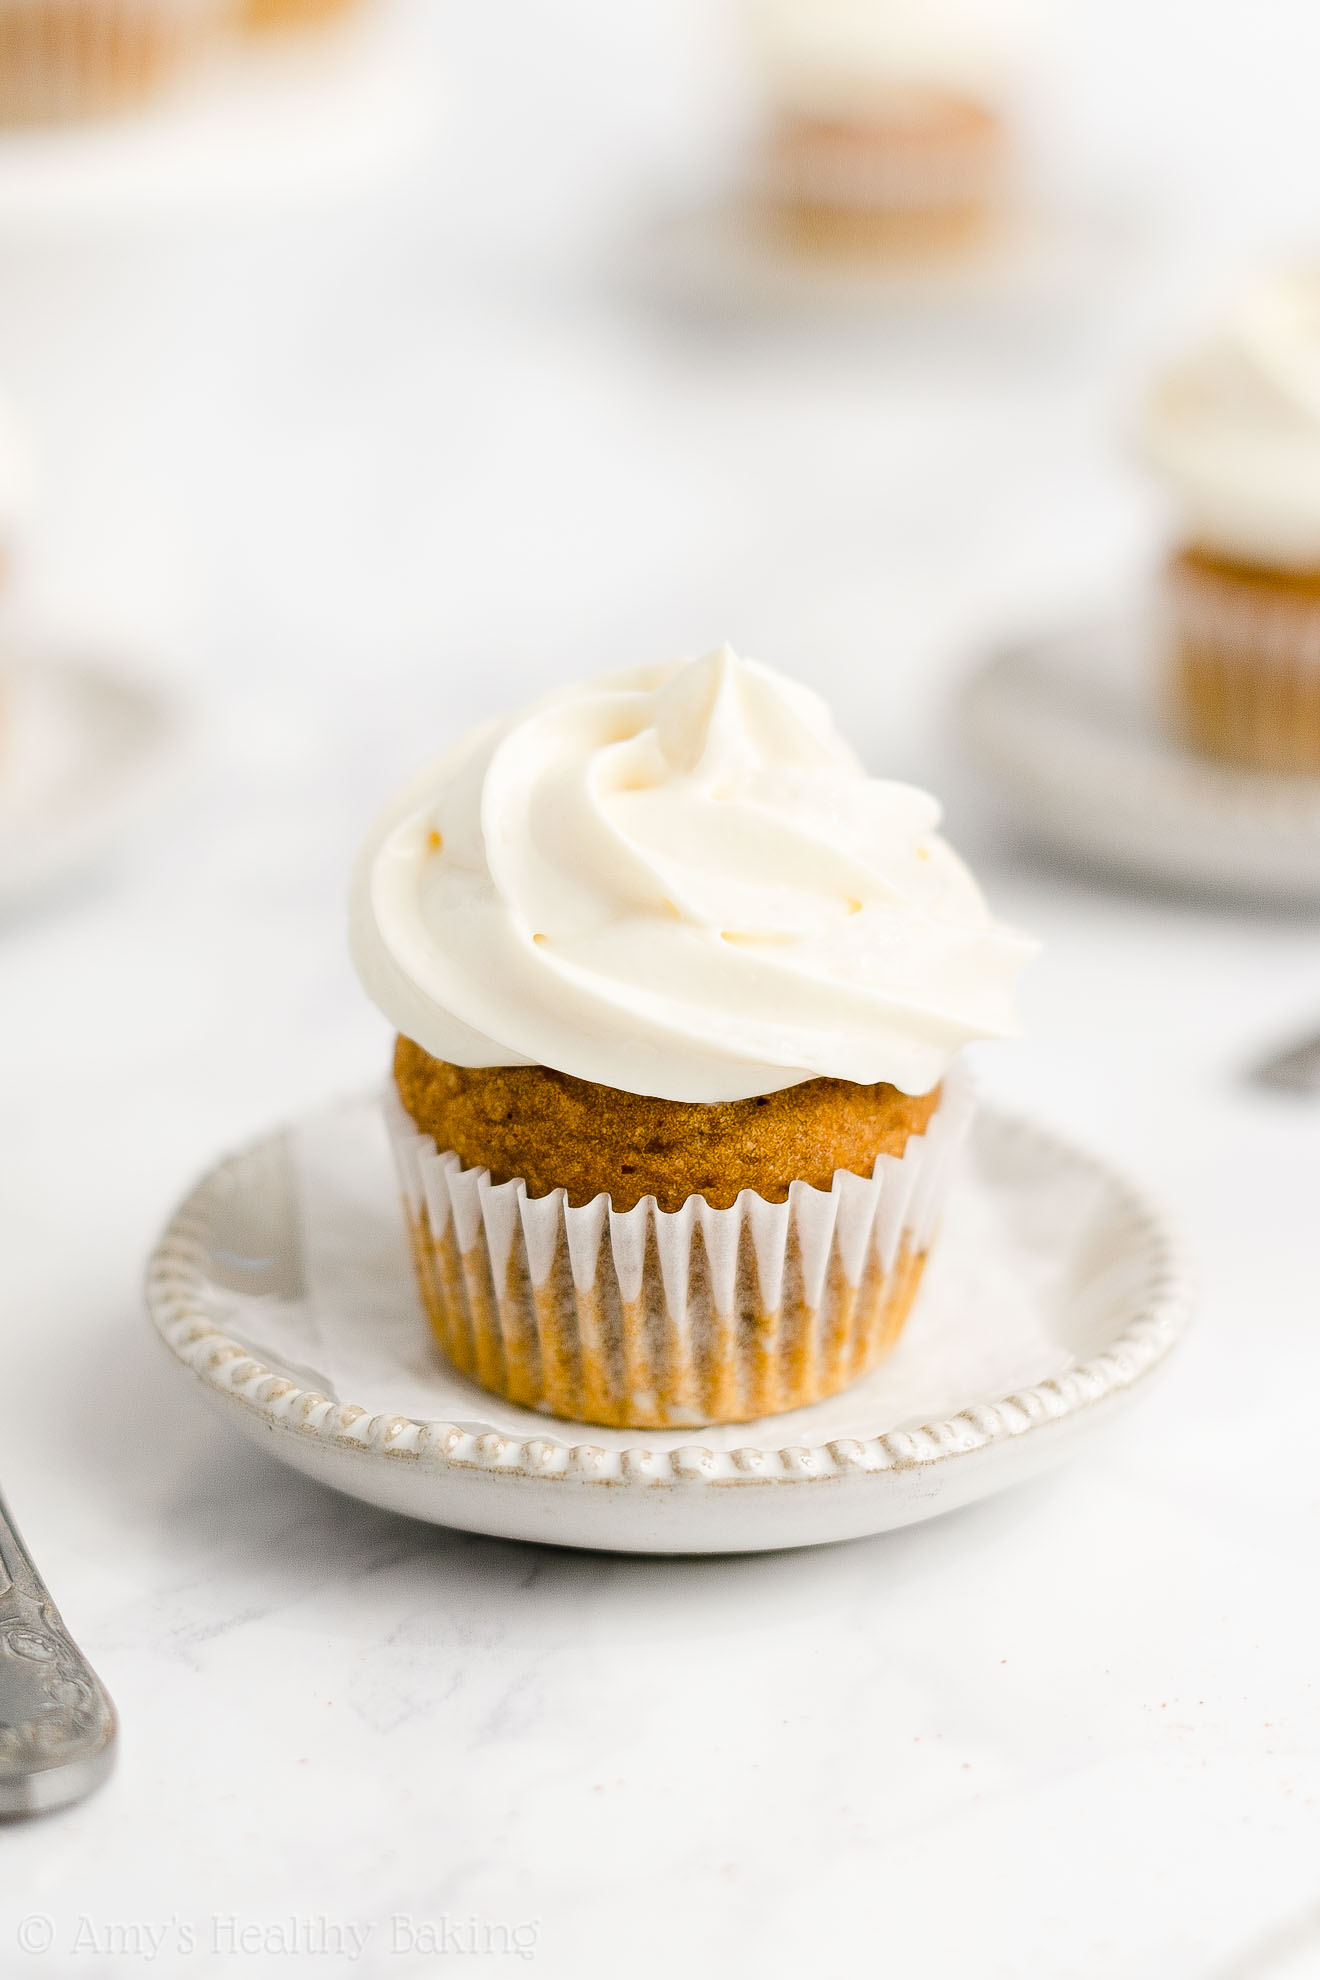 Weight Watchers Healthy Homemade Mini Pumpkin Cupcakes + Cream Cheese Frosting